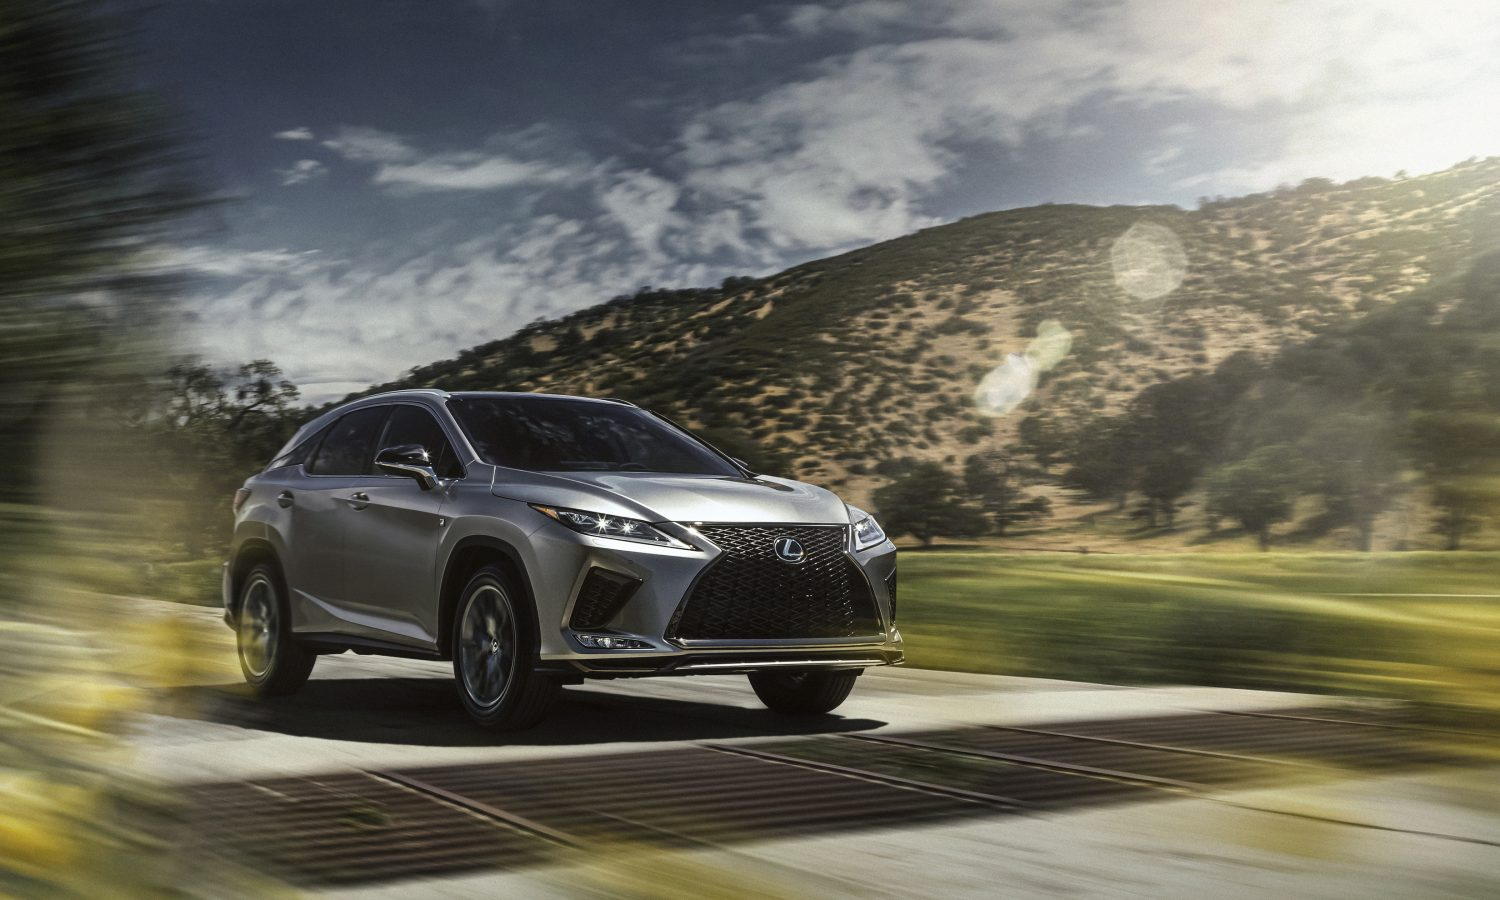 5 Things To Do in <br> the New Lexus RX